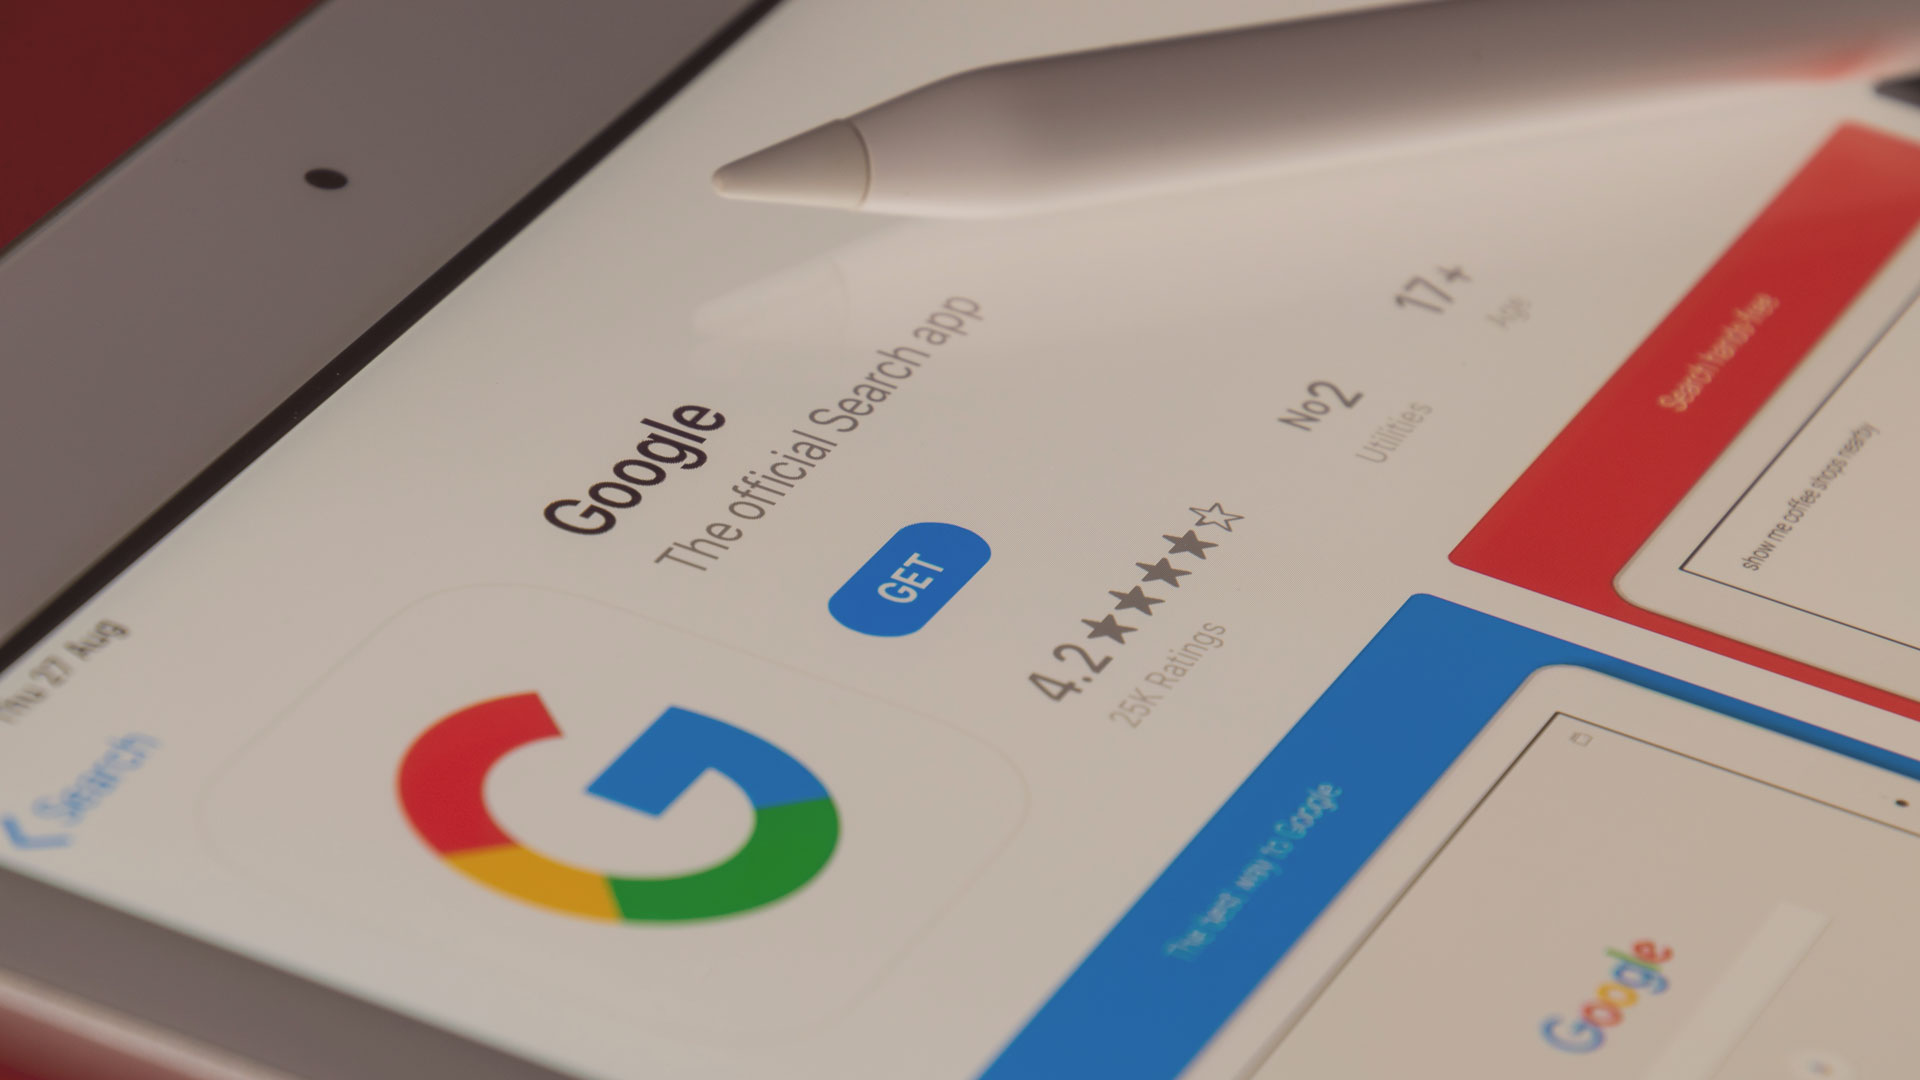 Google Ads February 2021 update: Phrase match gets modified